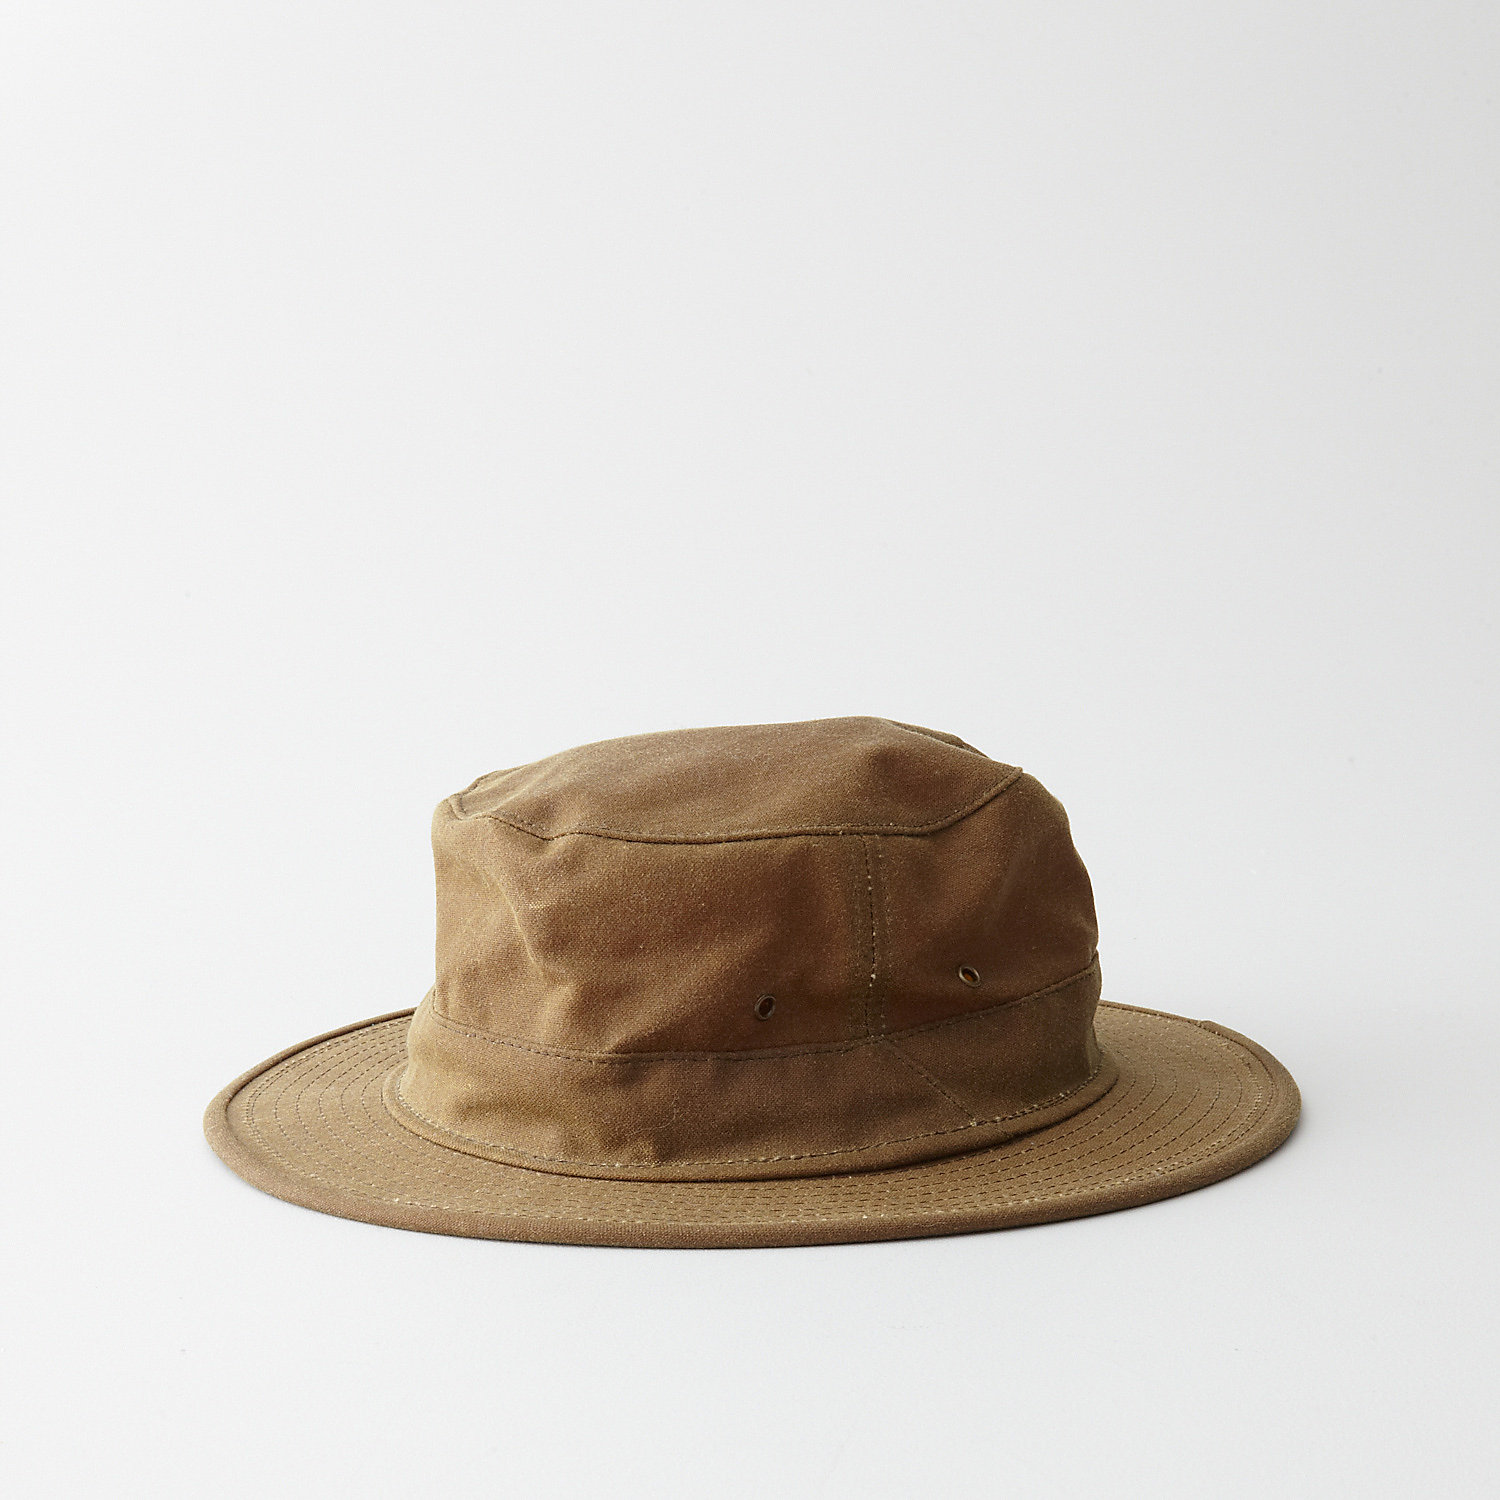 ORIGINAL TIN CLOTH HAT